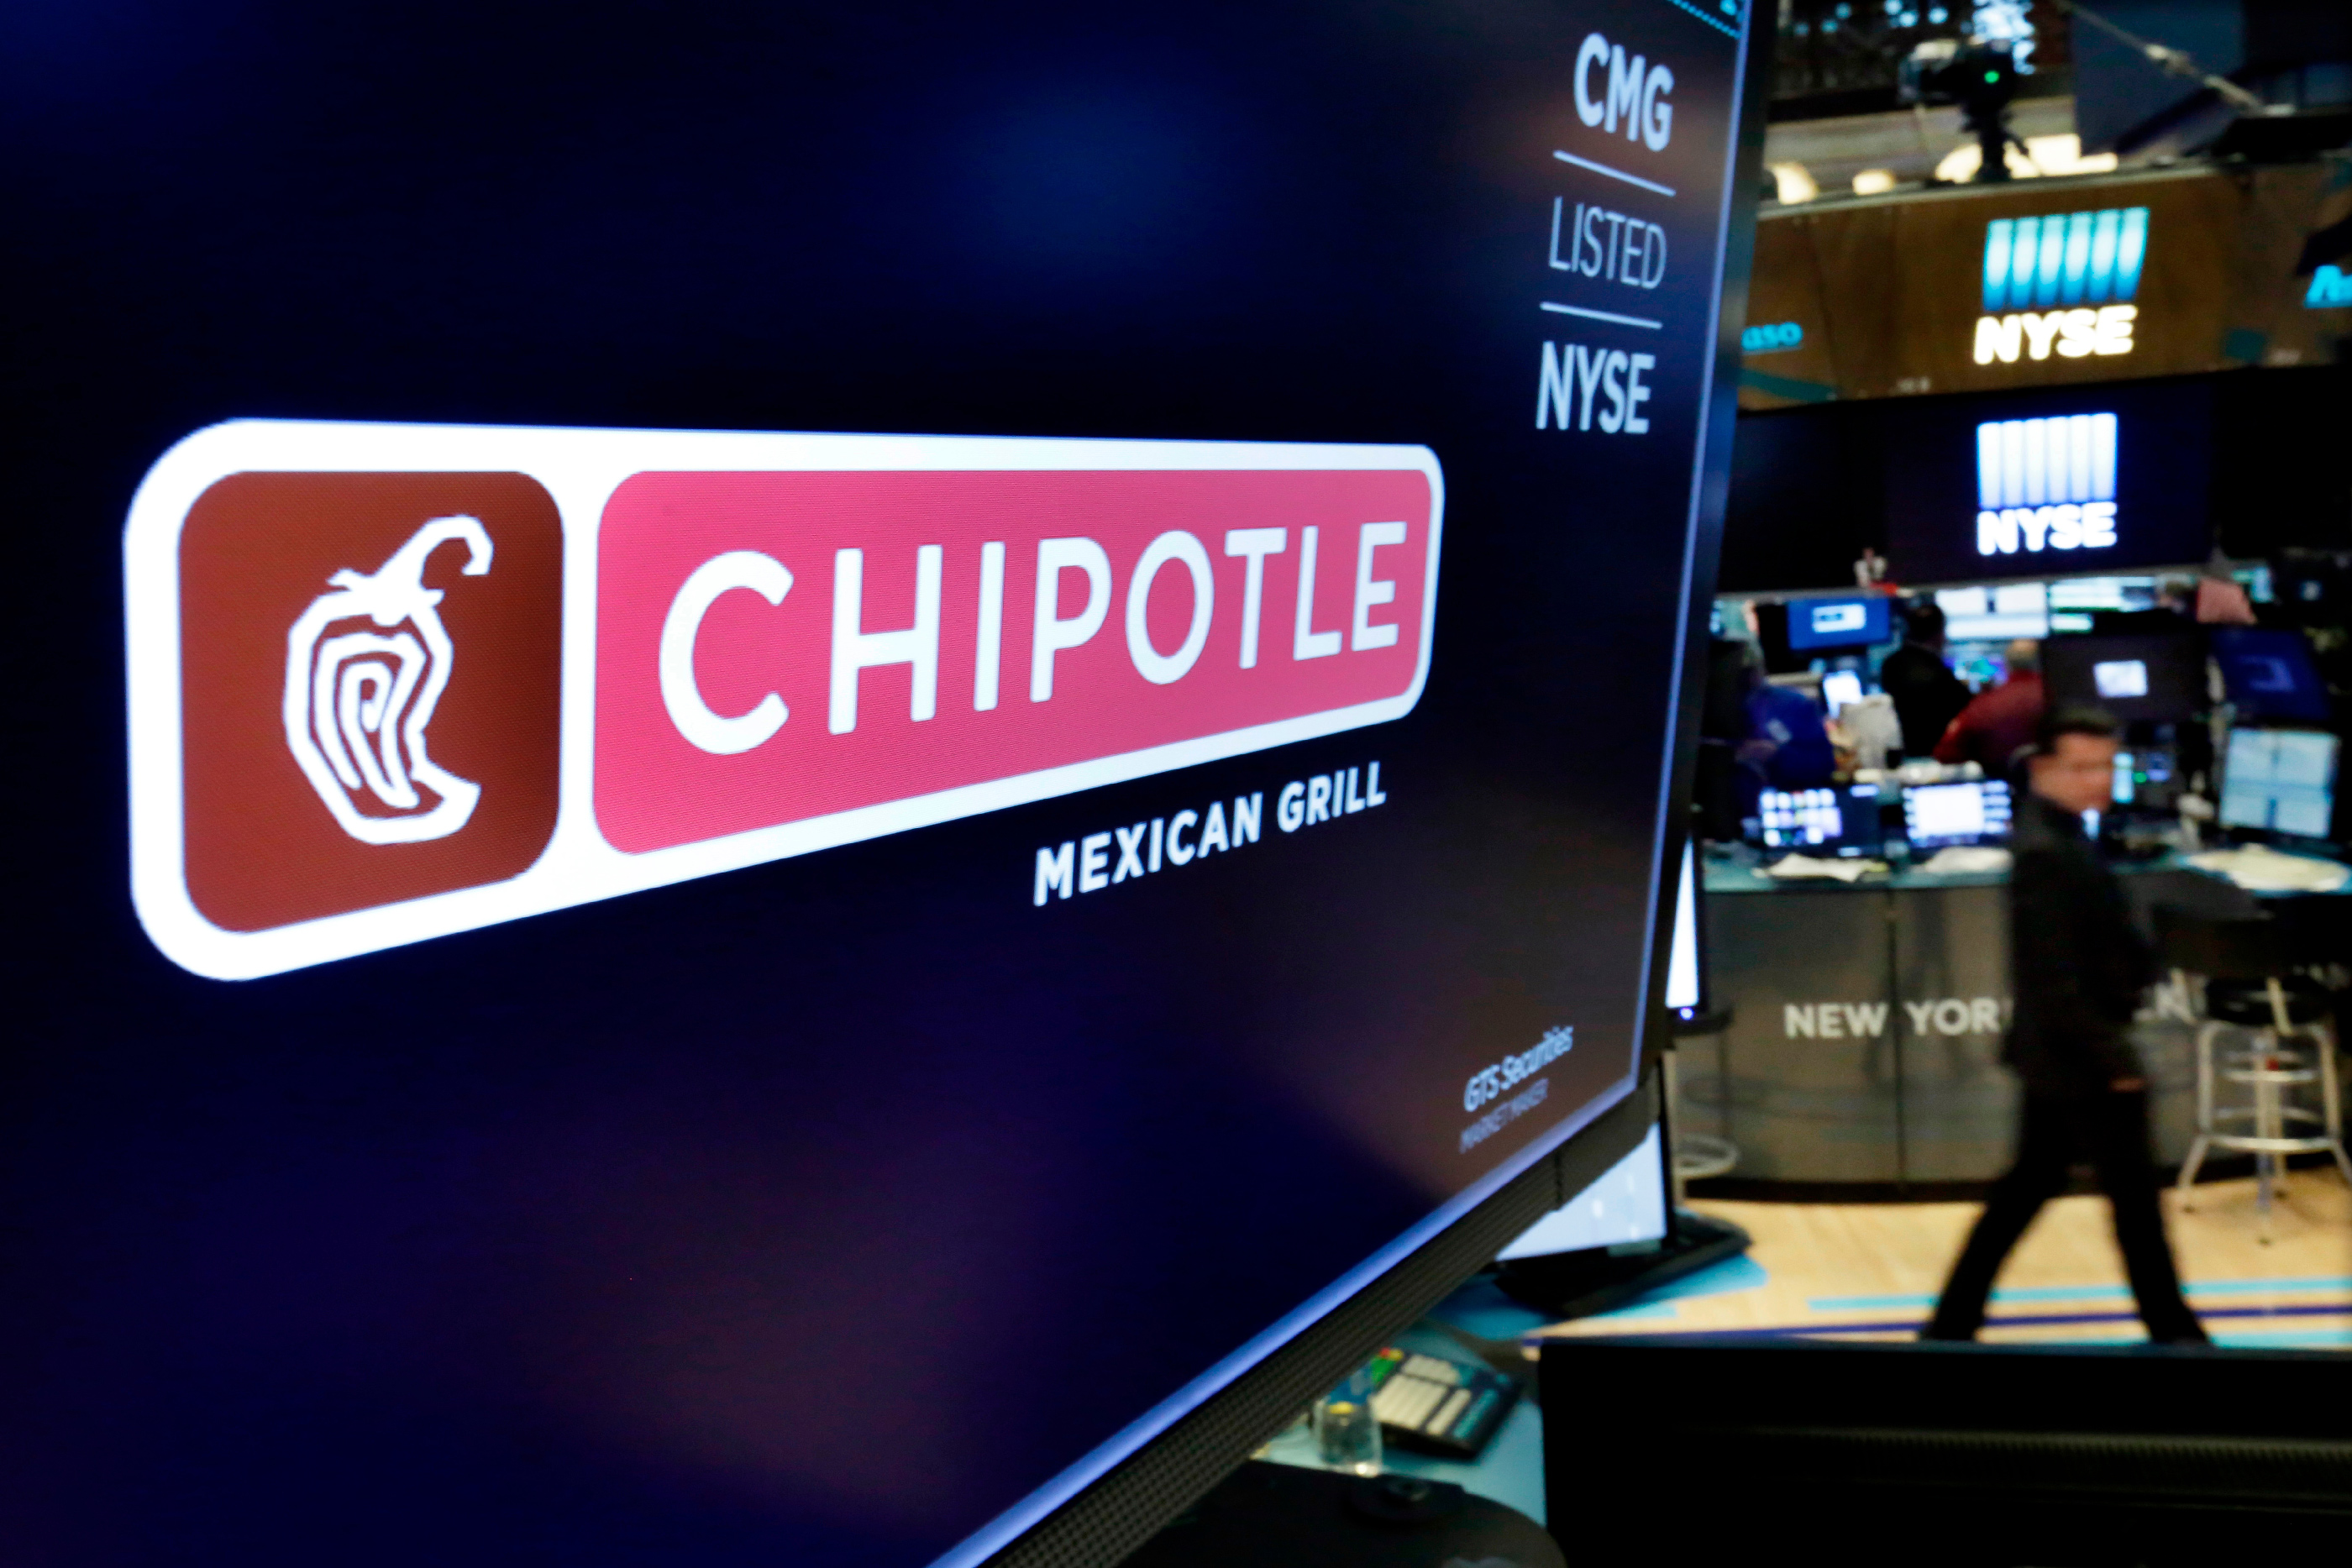 Chipotle Customers Fled in Droves After a String of Health Scares. Now It's One of 2019's Hottest Stocks